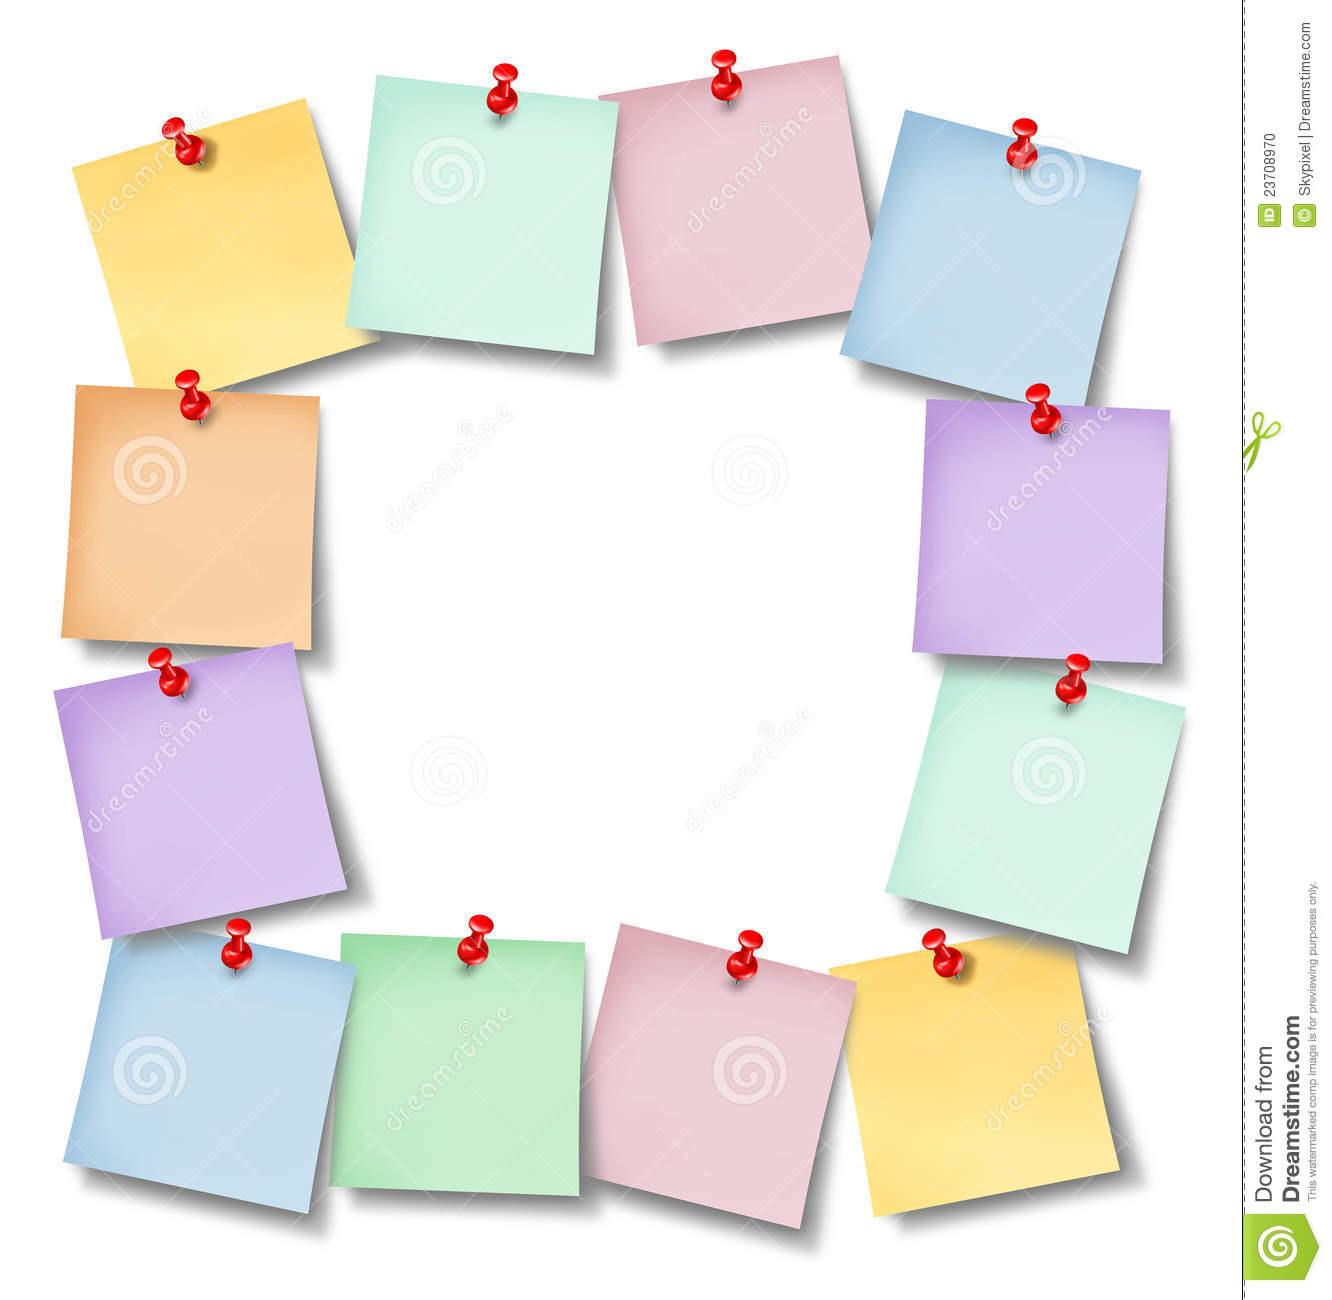 office notes blank frame stock photo image 23708970